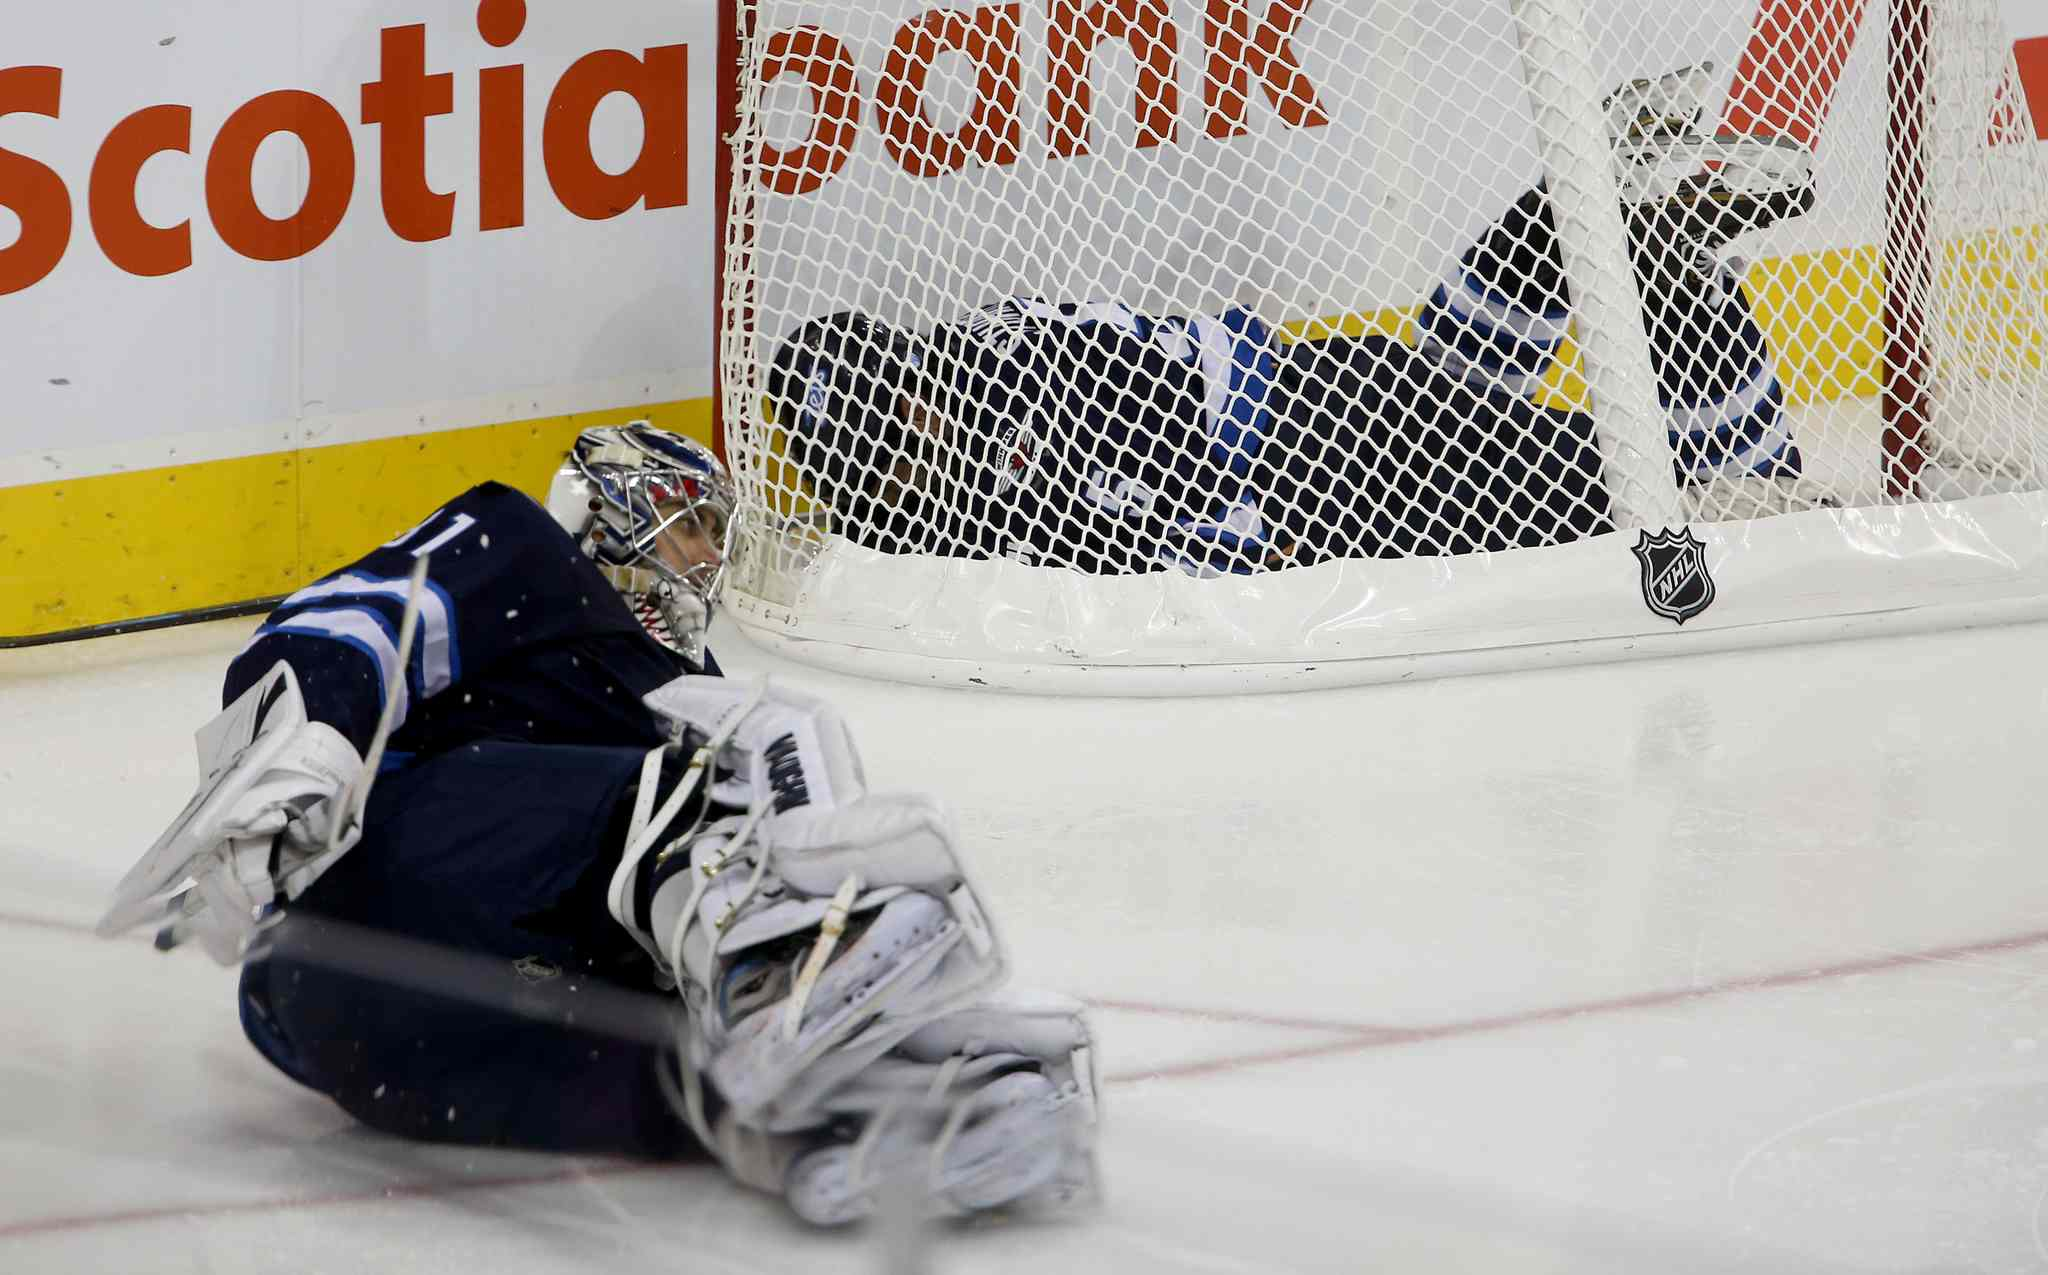 Winnipeg Jets' Mark Stuart ends up in the Jets' net after colliding with goaltender Ondrej Pavelec during the third period.